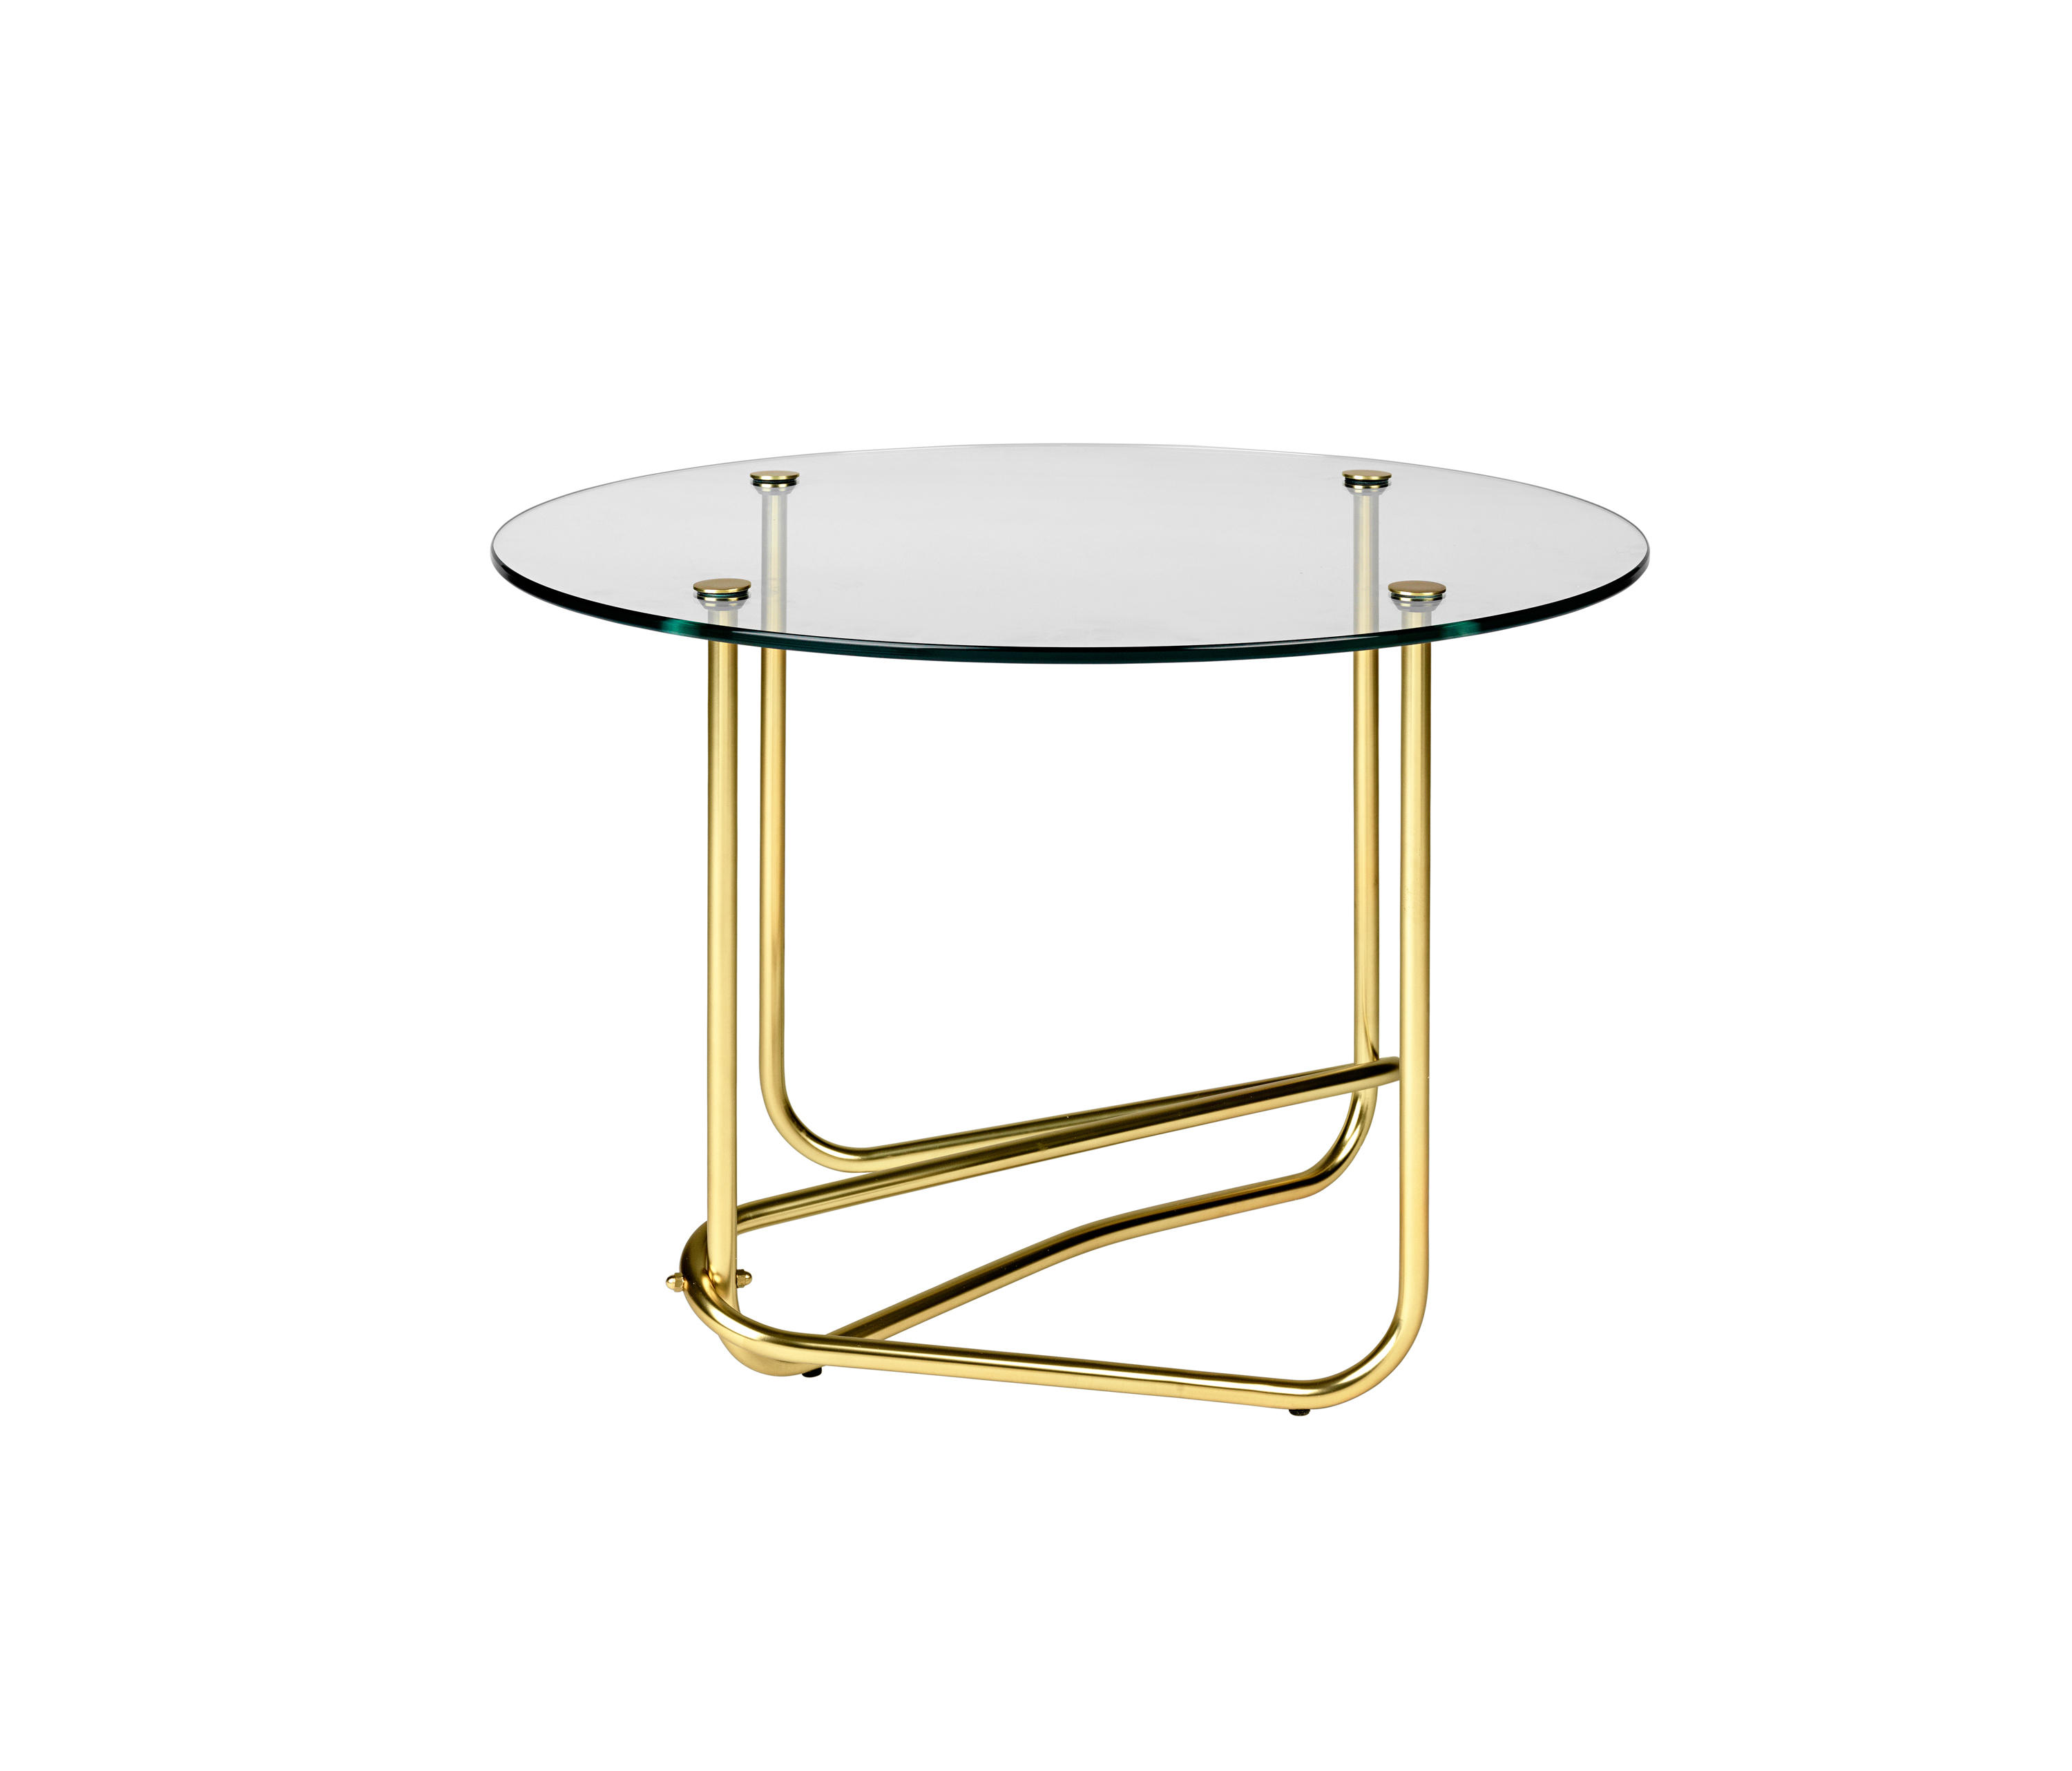 Habitat Herrmann Square Glass Coffee Table: MATÉGOT GLASS COFFEE TABLE